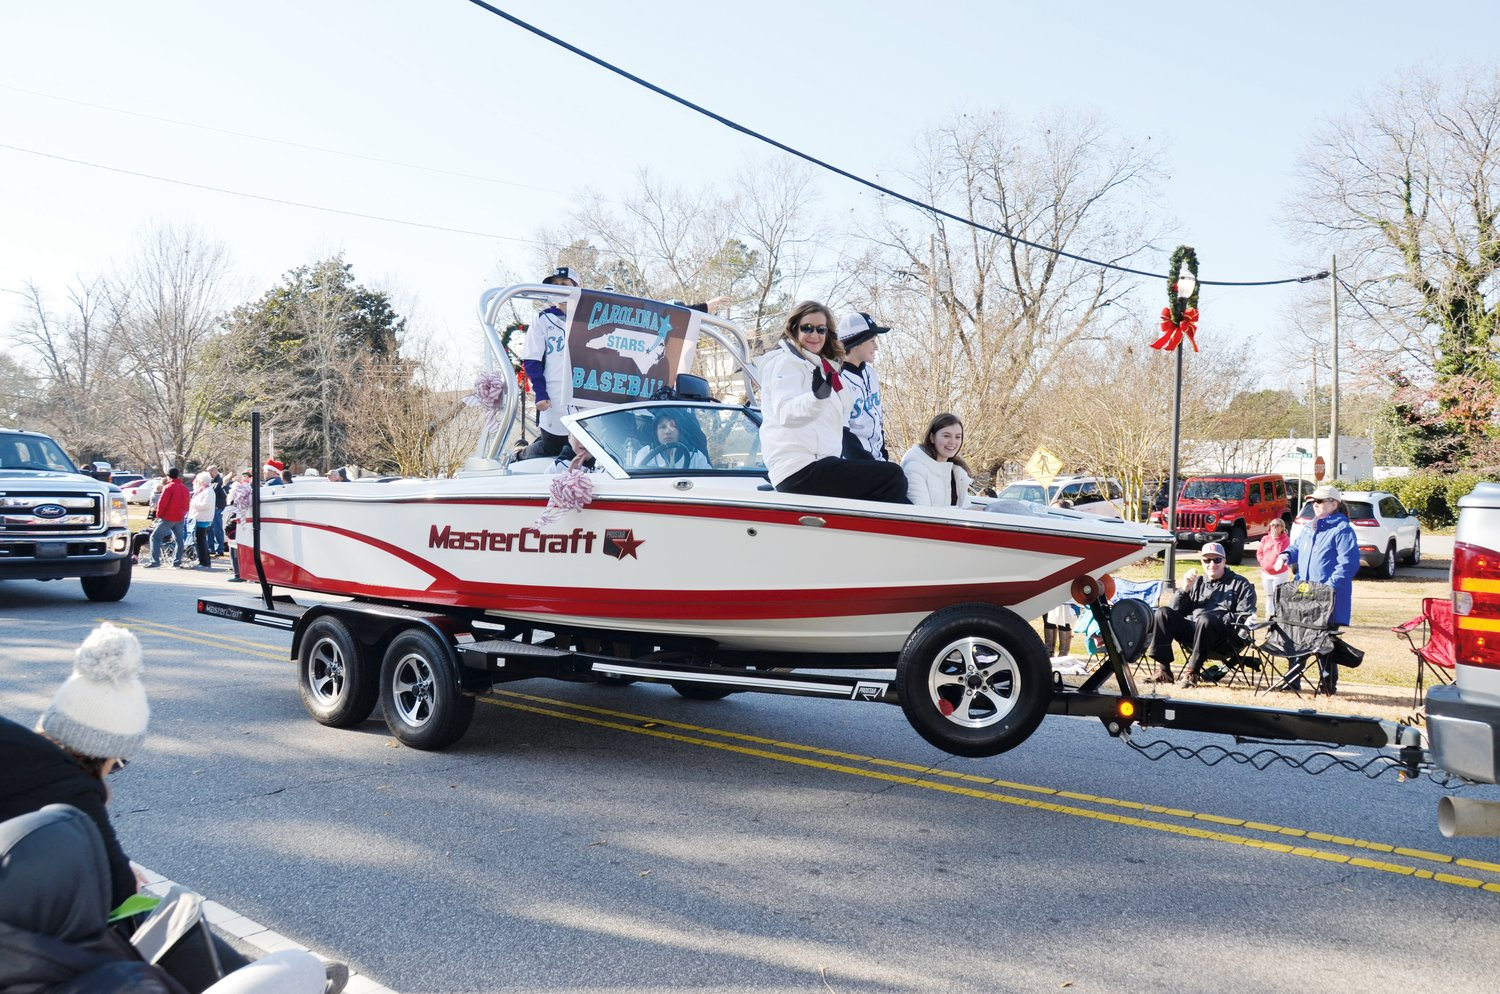 World renowned professional water skier April Coble, who grew up in the Angier area, waves from the float of her family's Lillington ski school during Angier's parade Saturday morning.